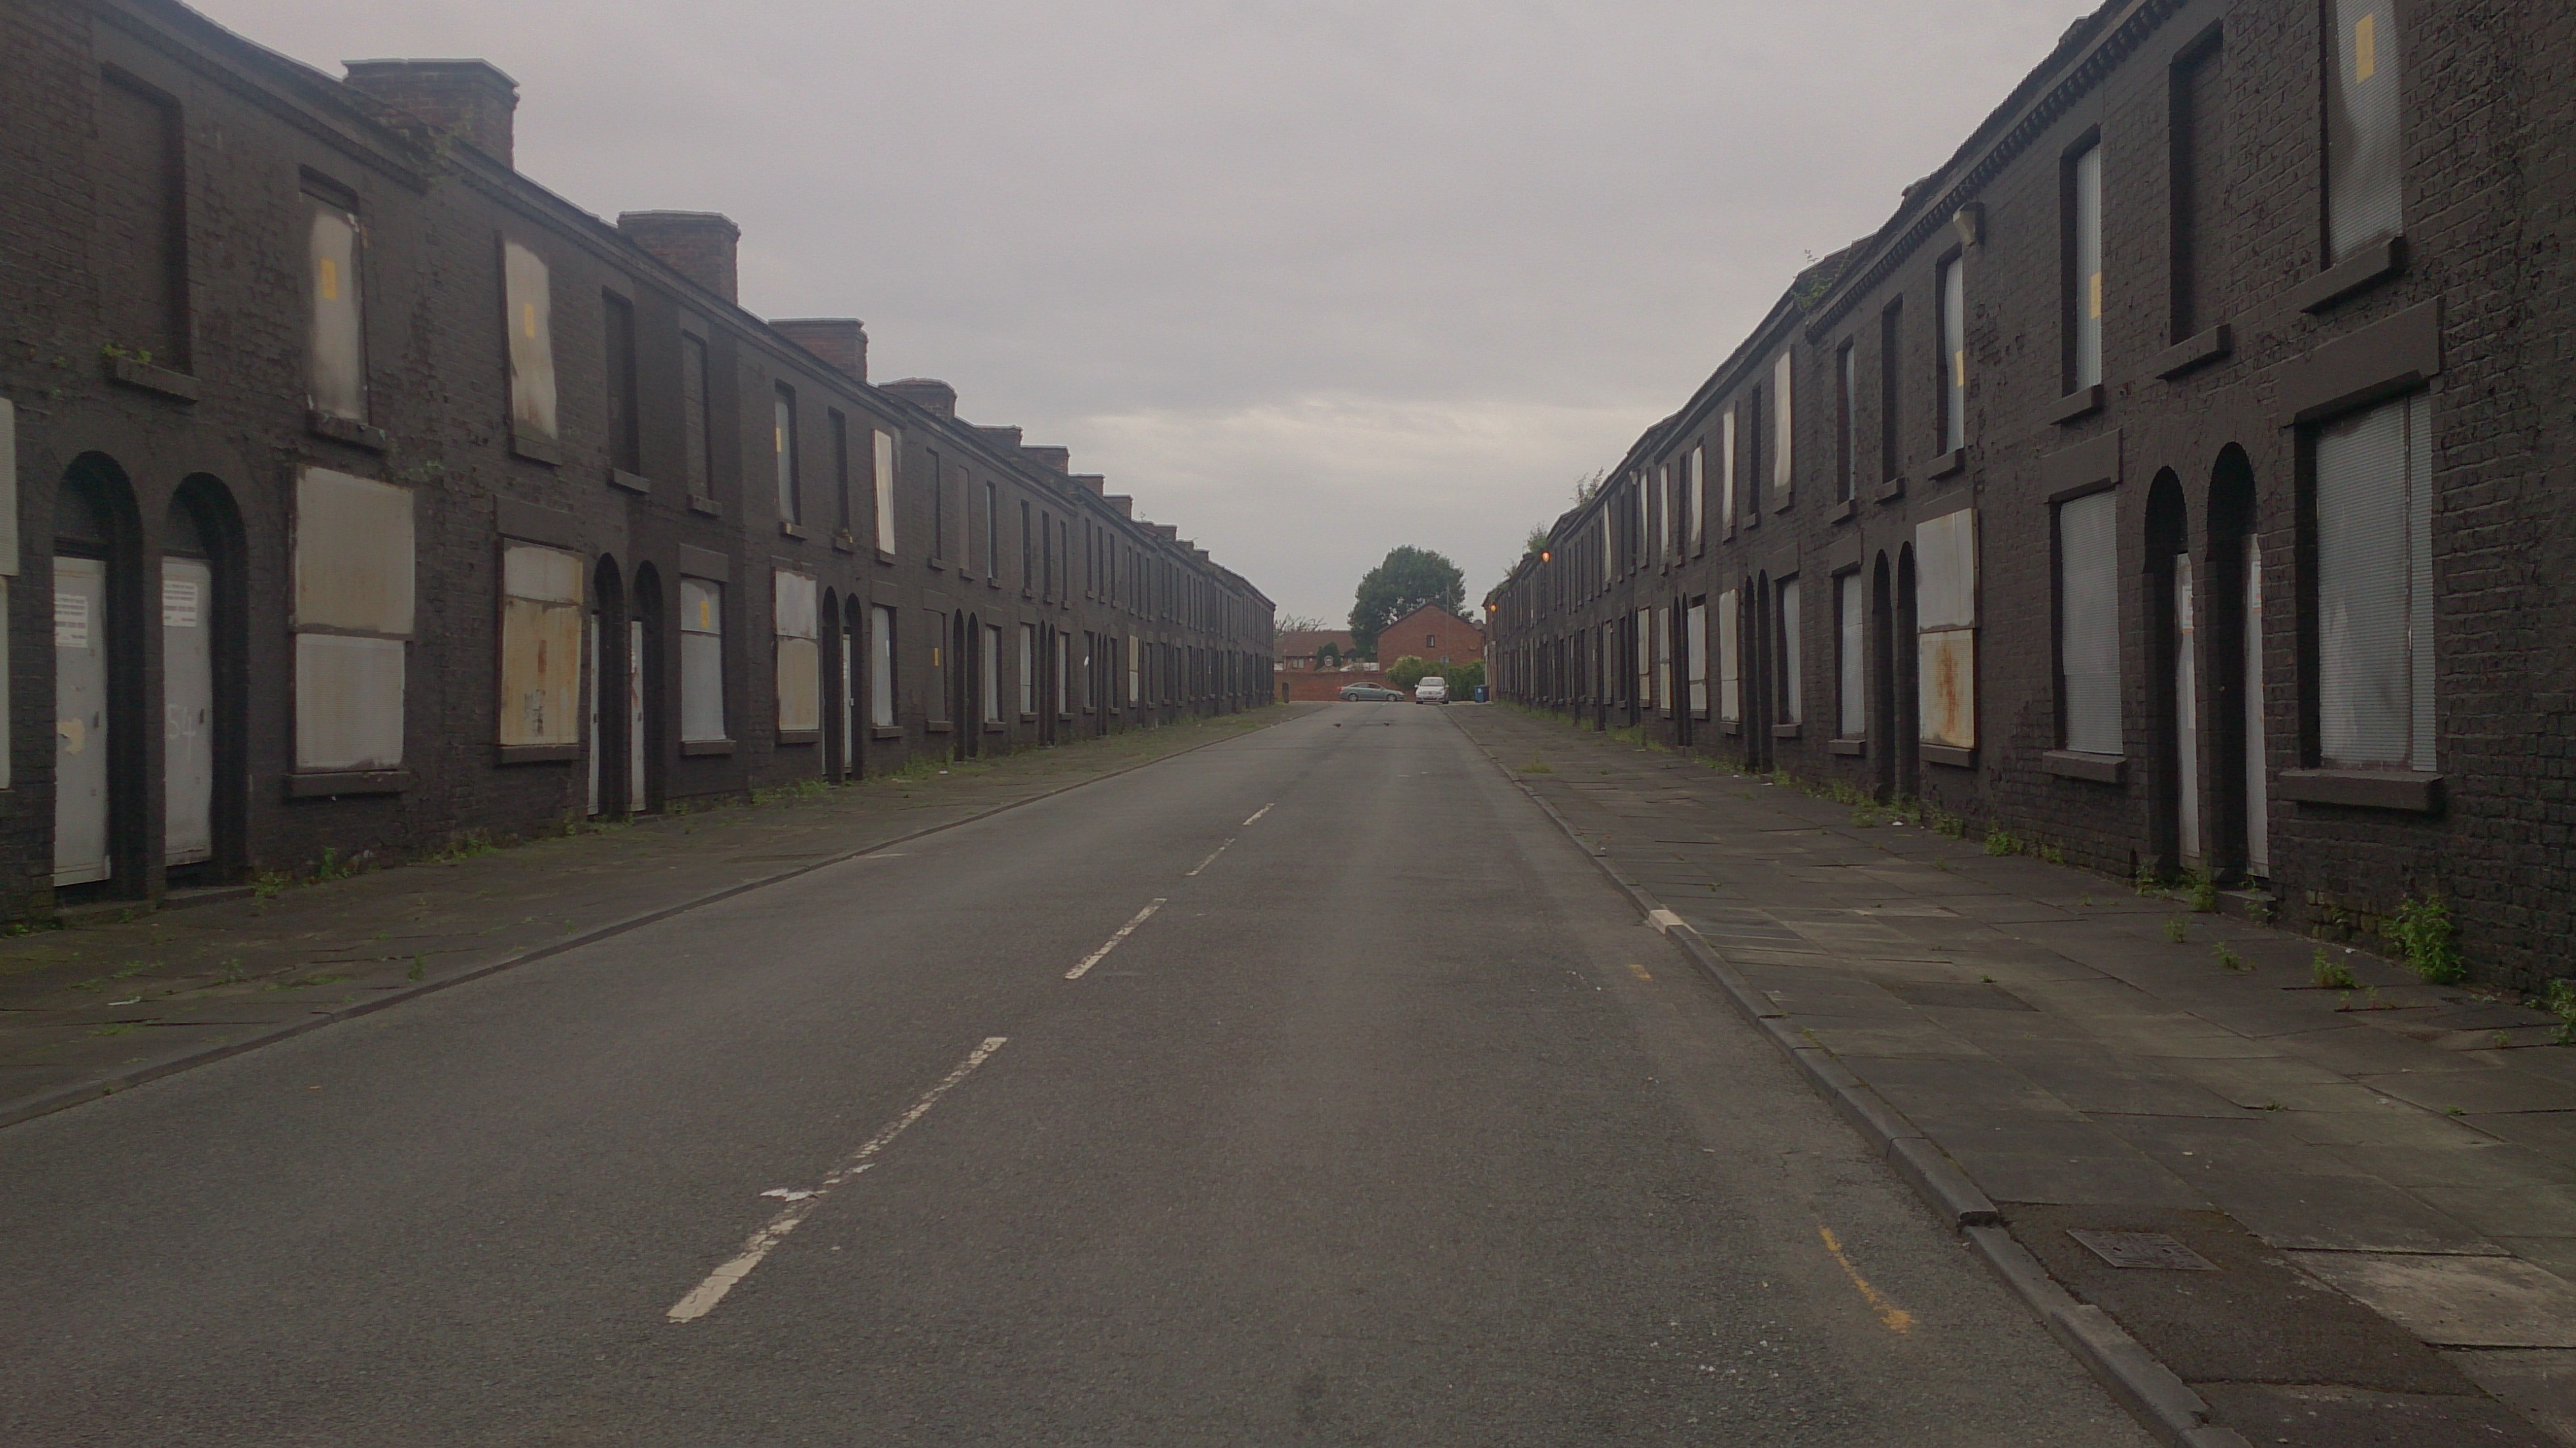 Boarded up houses in the Welsh Streets, Liverpool